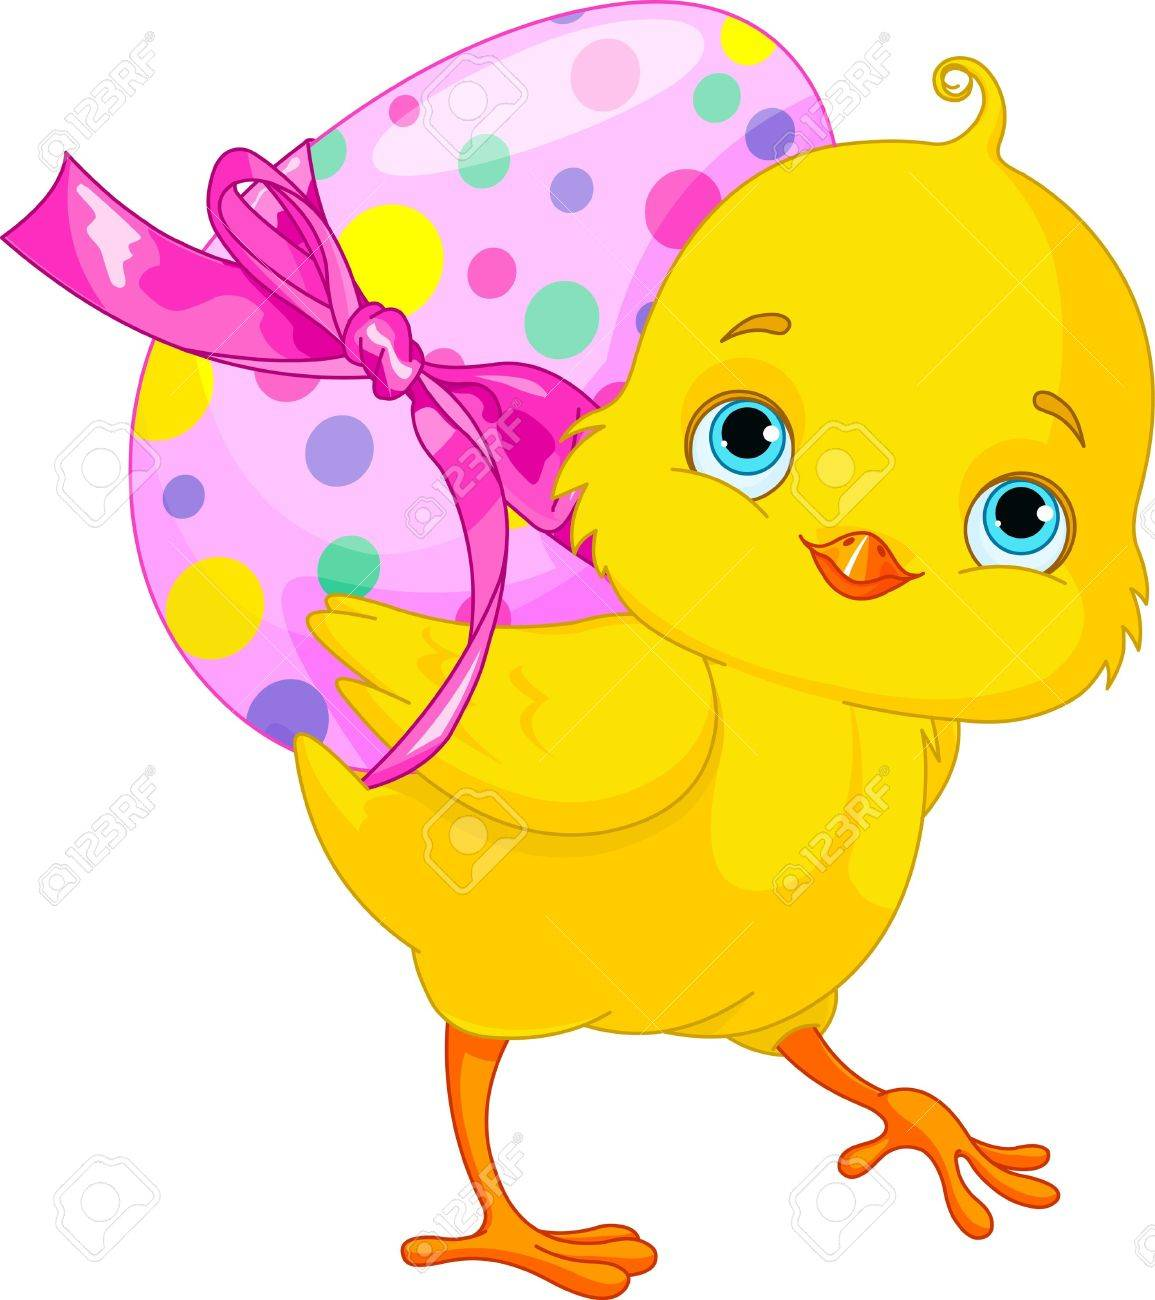 Illustration of happy Chicken bunny carrying egg Stock Vector - 18307586